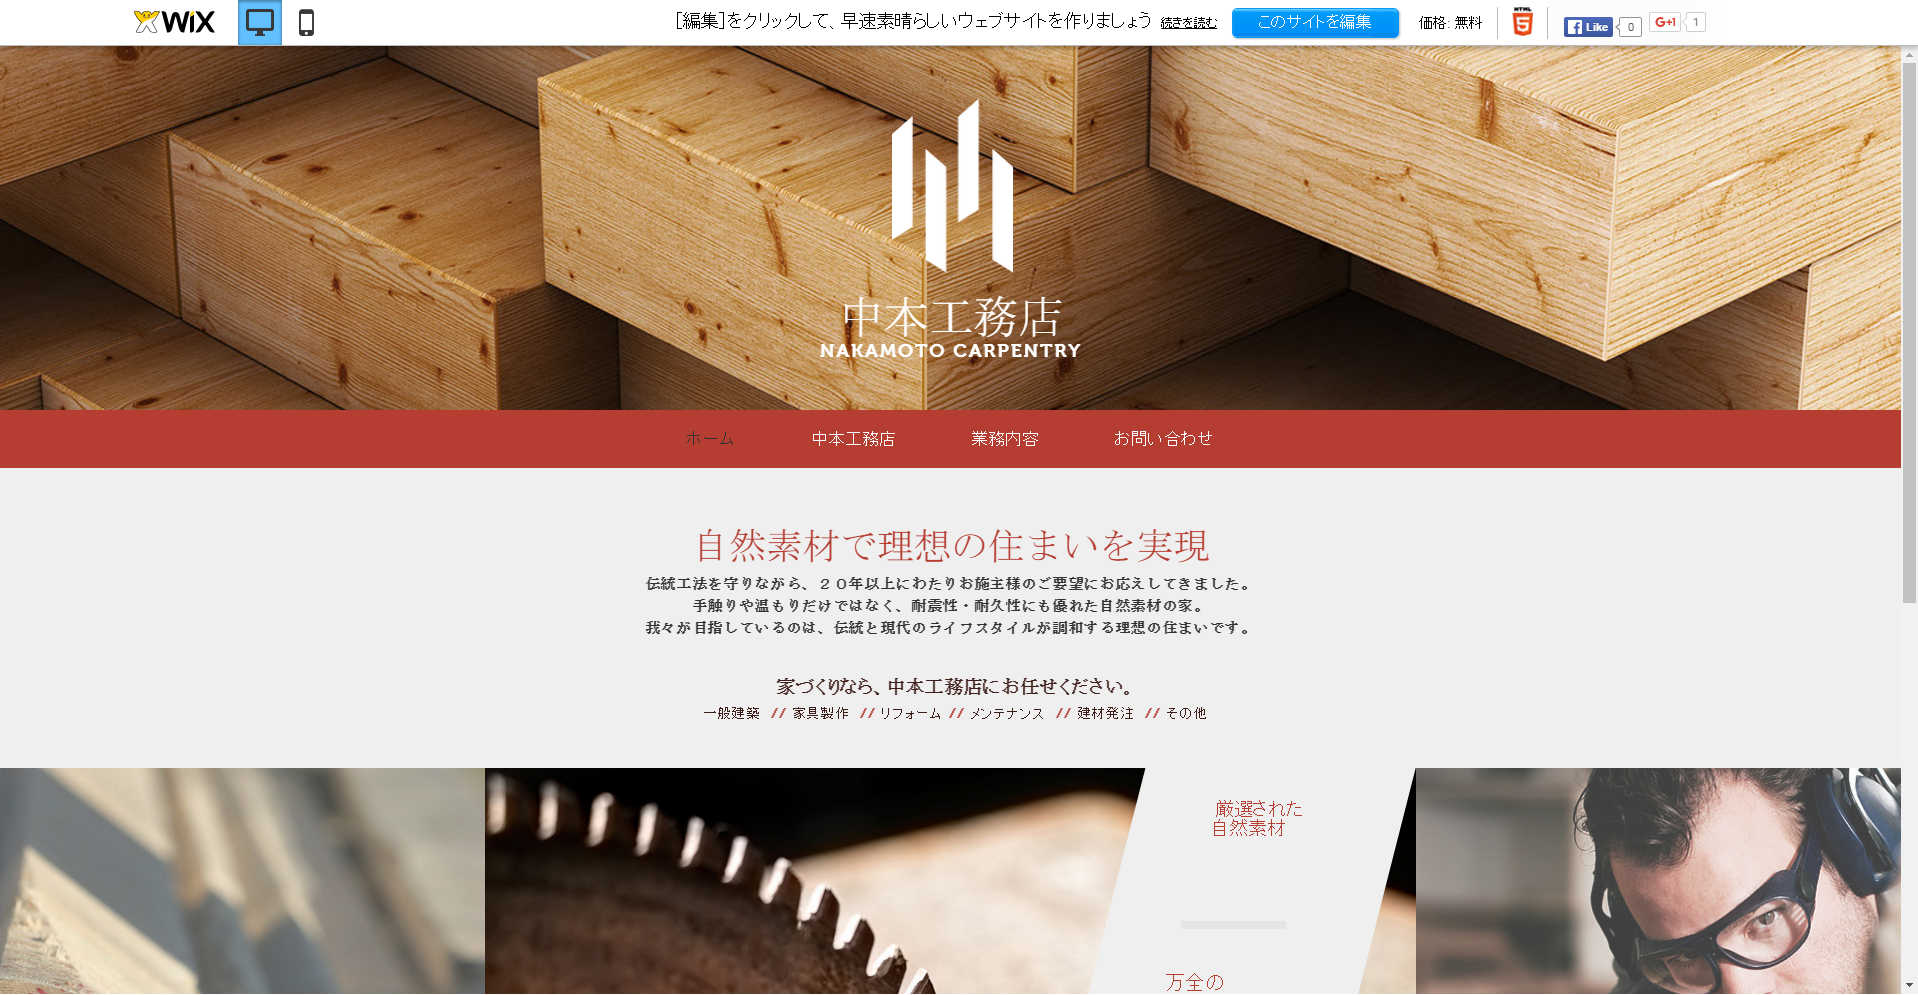 FireShot Capture 32 - 工務店 テンプレート I WIX_ - http___ja.wix.com_website-template_view_html_1403